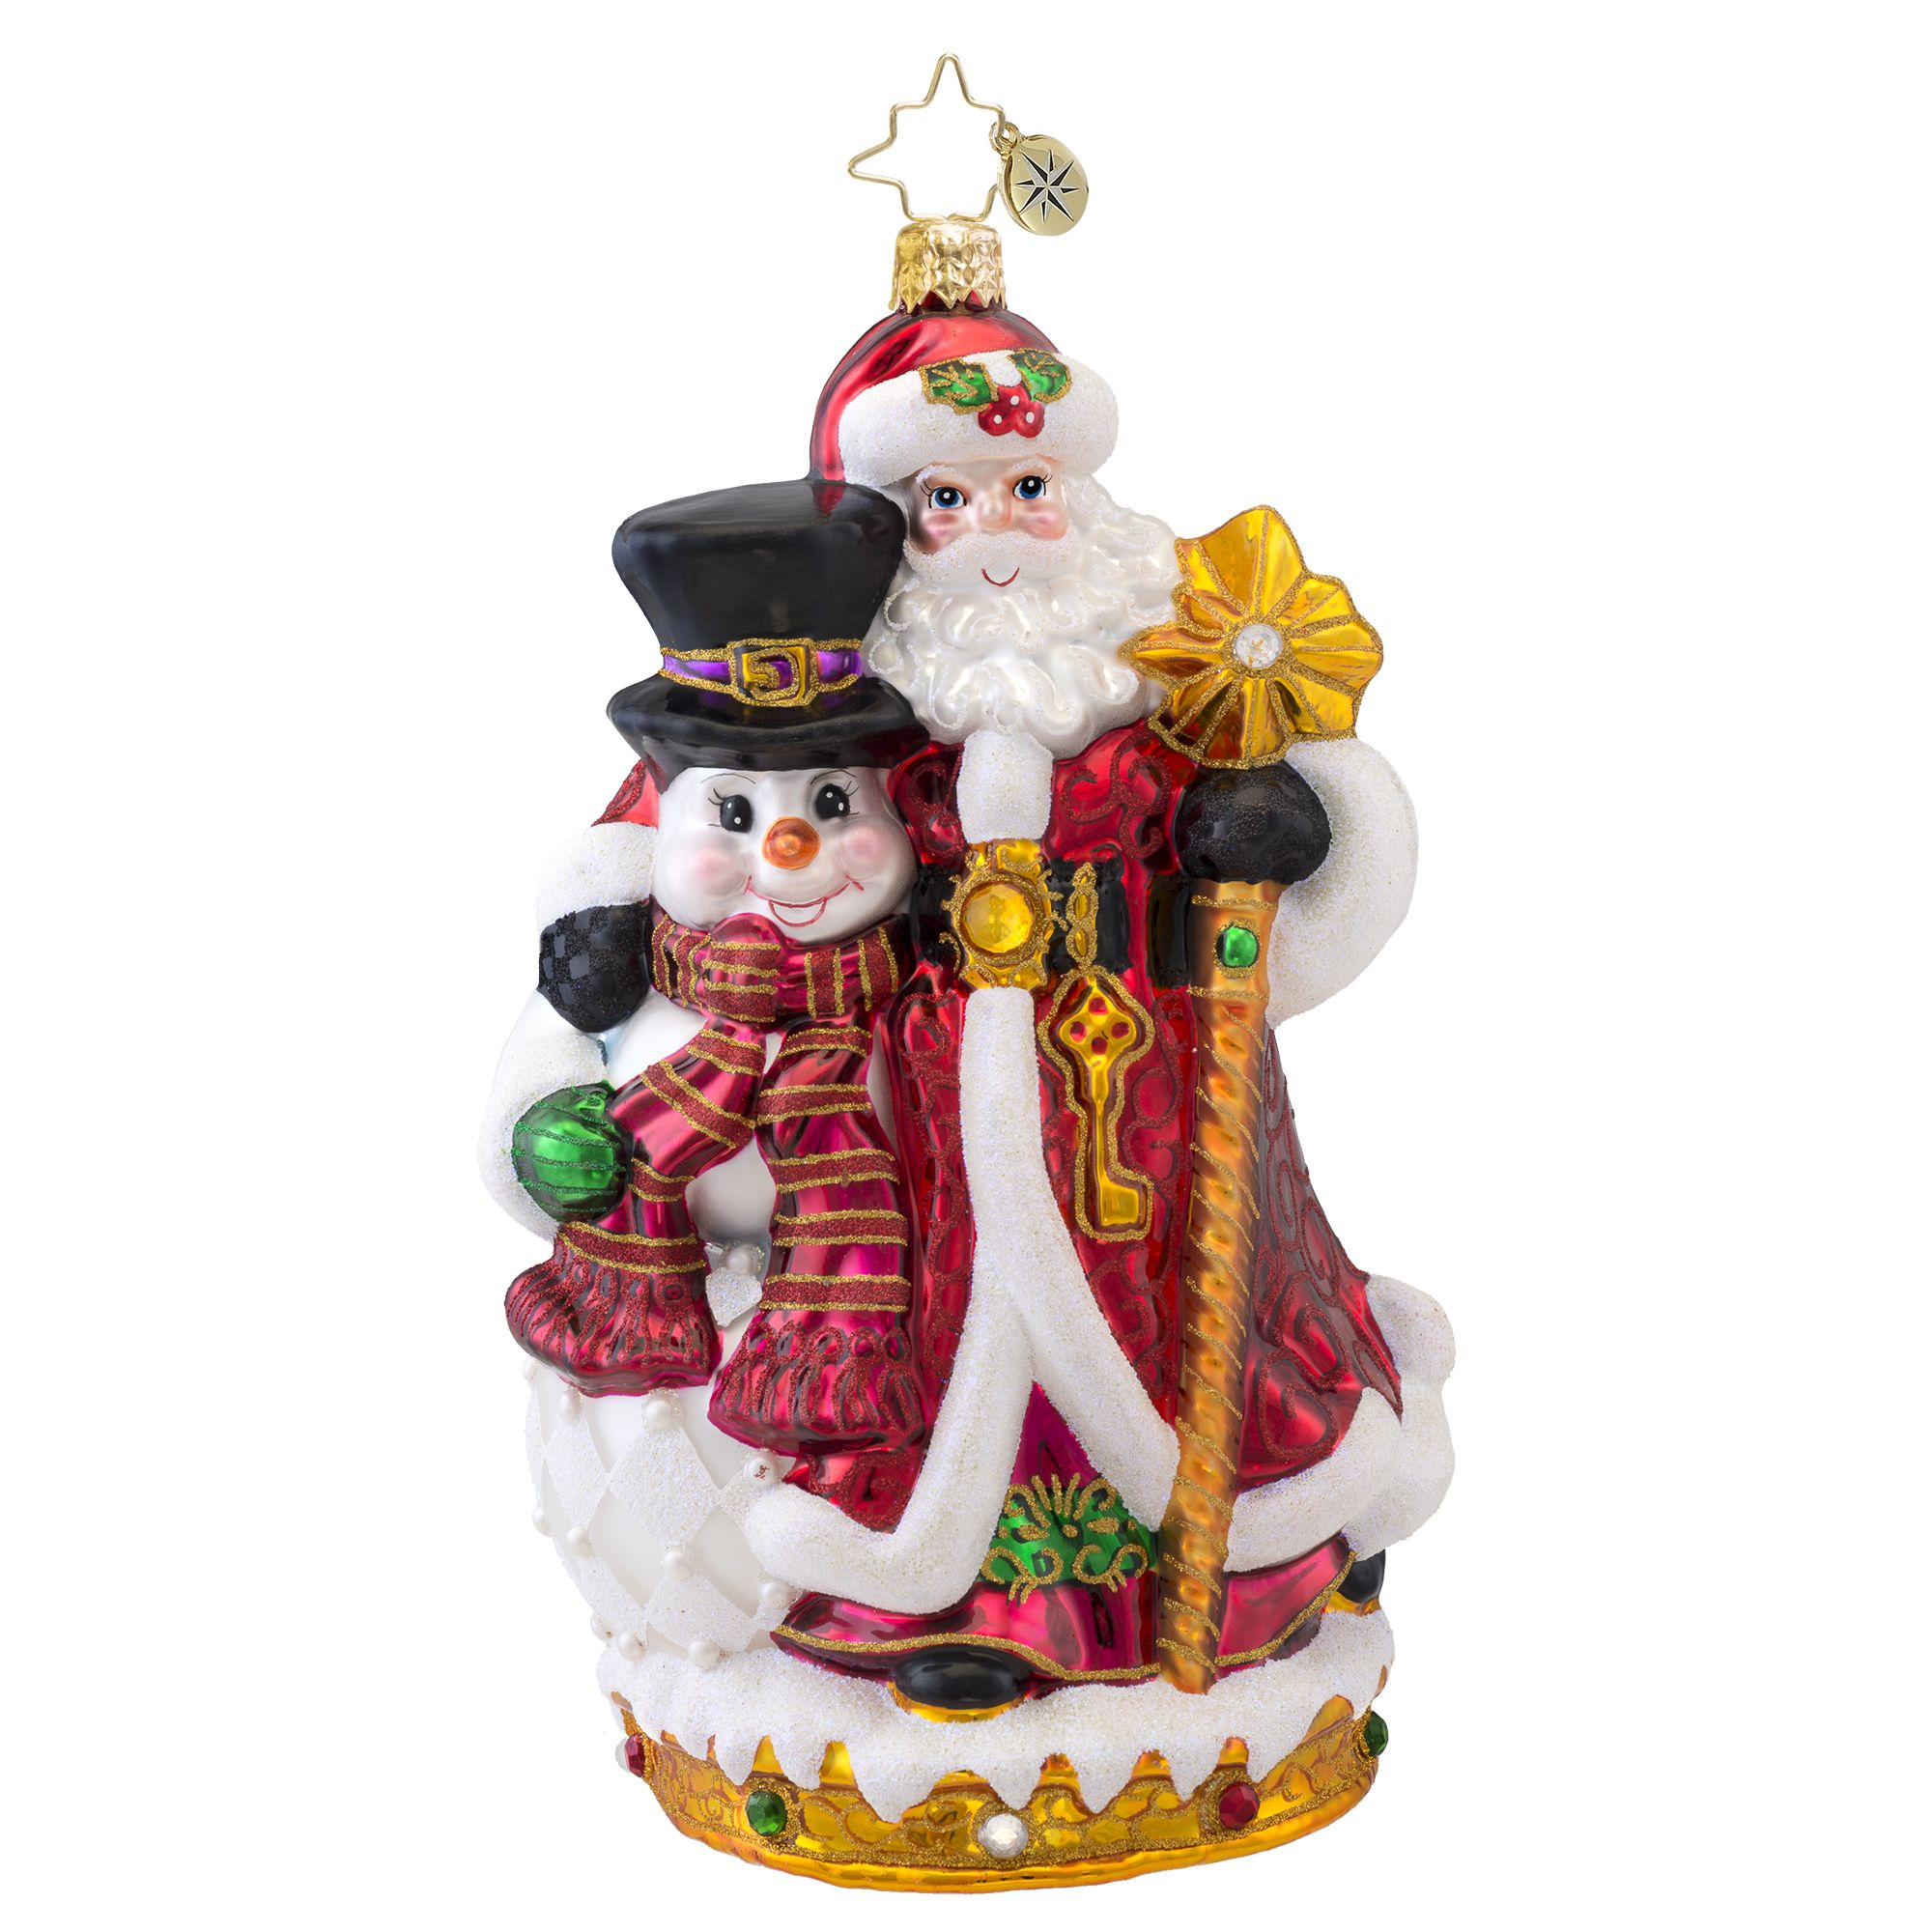 City Lights Sneak Peak The Christopher Radko Company S 2013 Exclusive Signing Event Ornament Best Friends For Ornaments Historical Christmas Friend Ornament